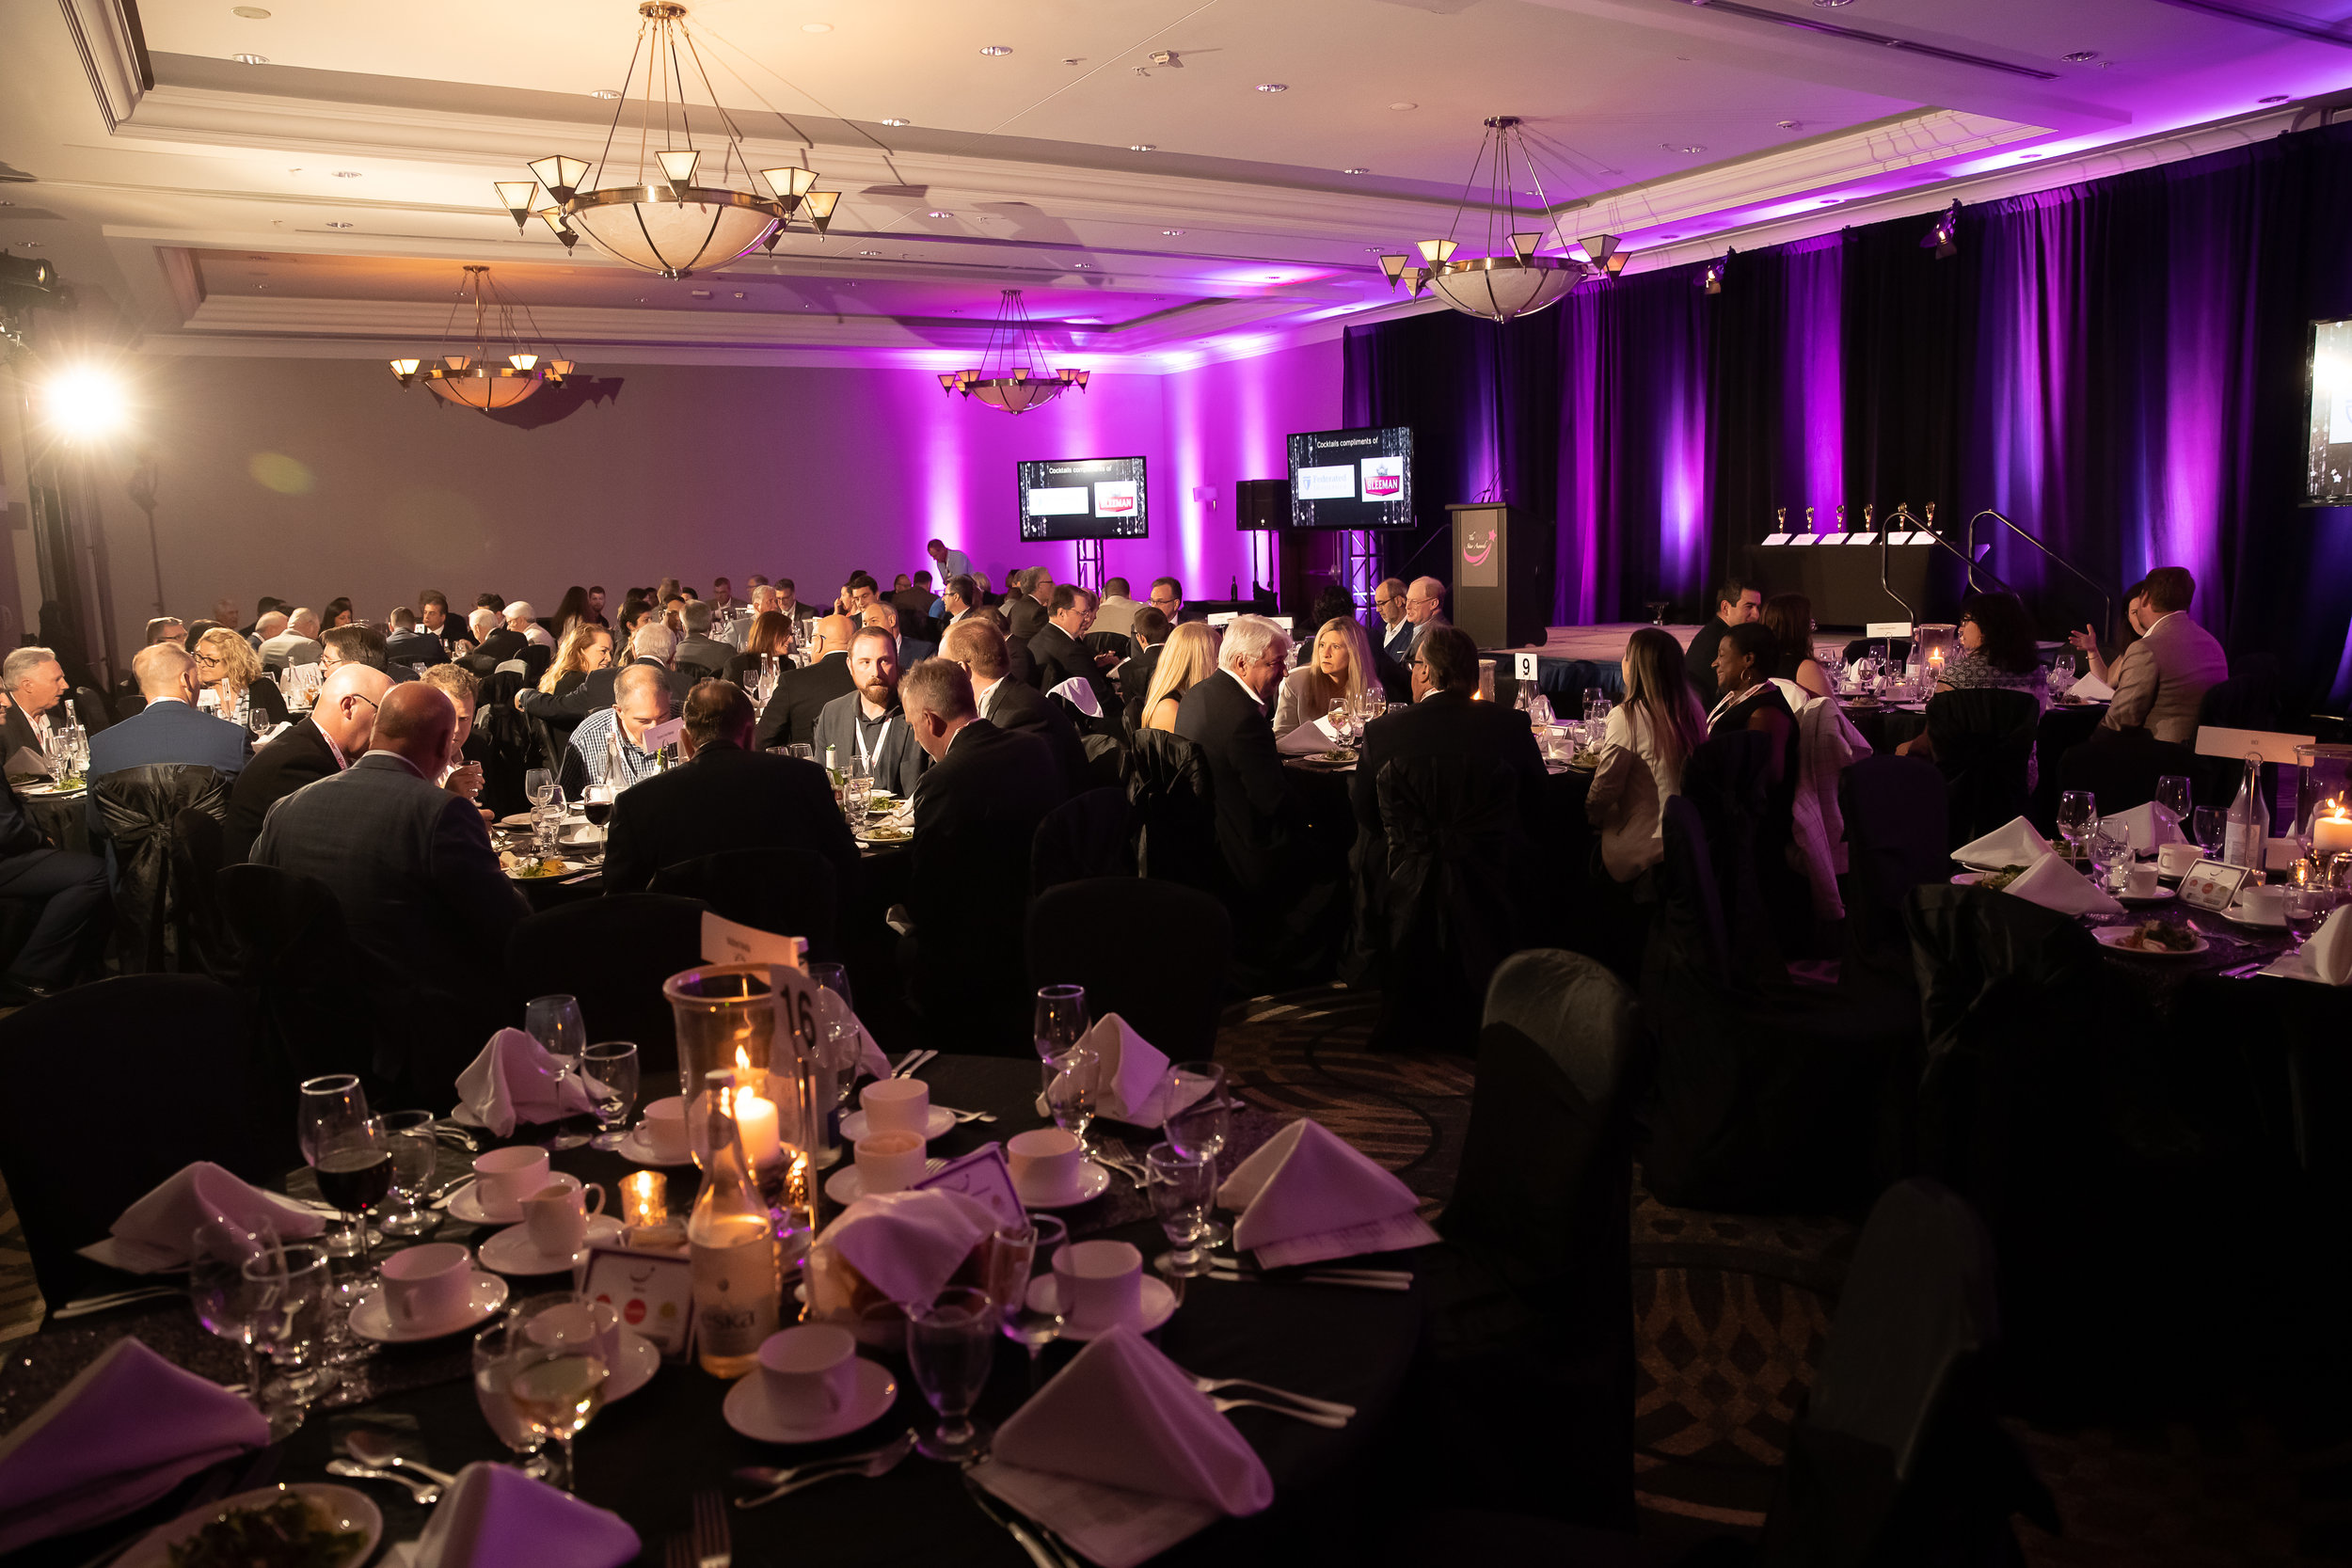 Included with the Gala Dinner is a full course meal, entertainment, featured products, take-home product samples, and a memorable night!